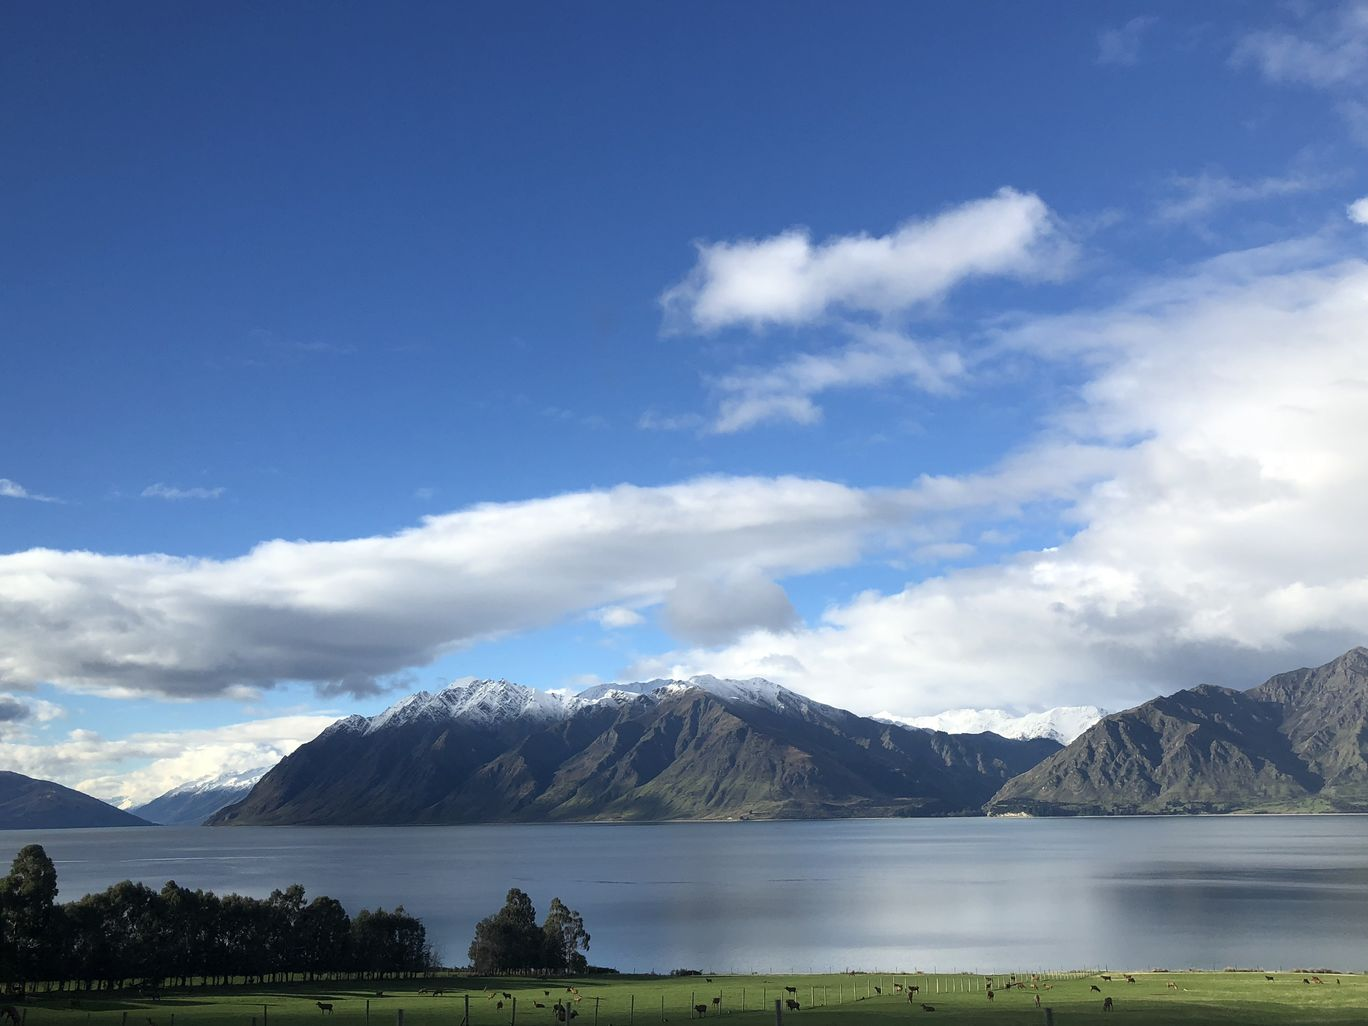 Photo of New Zealand By kashmira mhatre